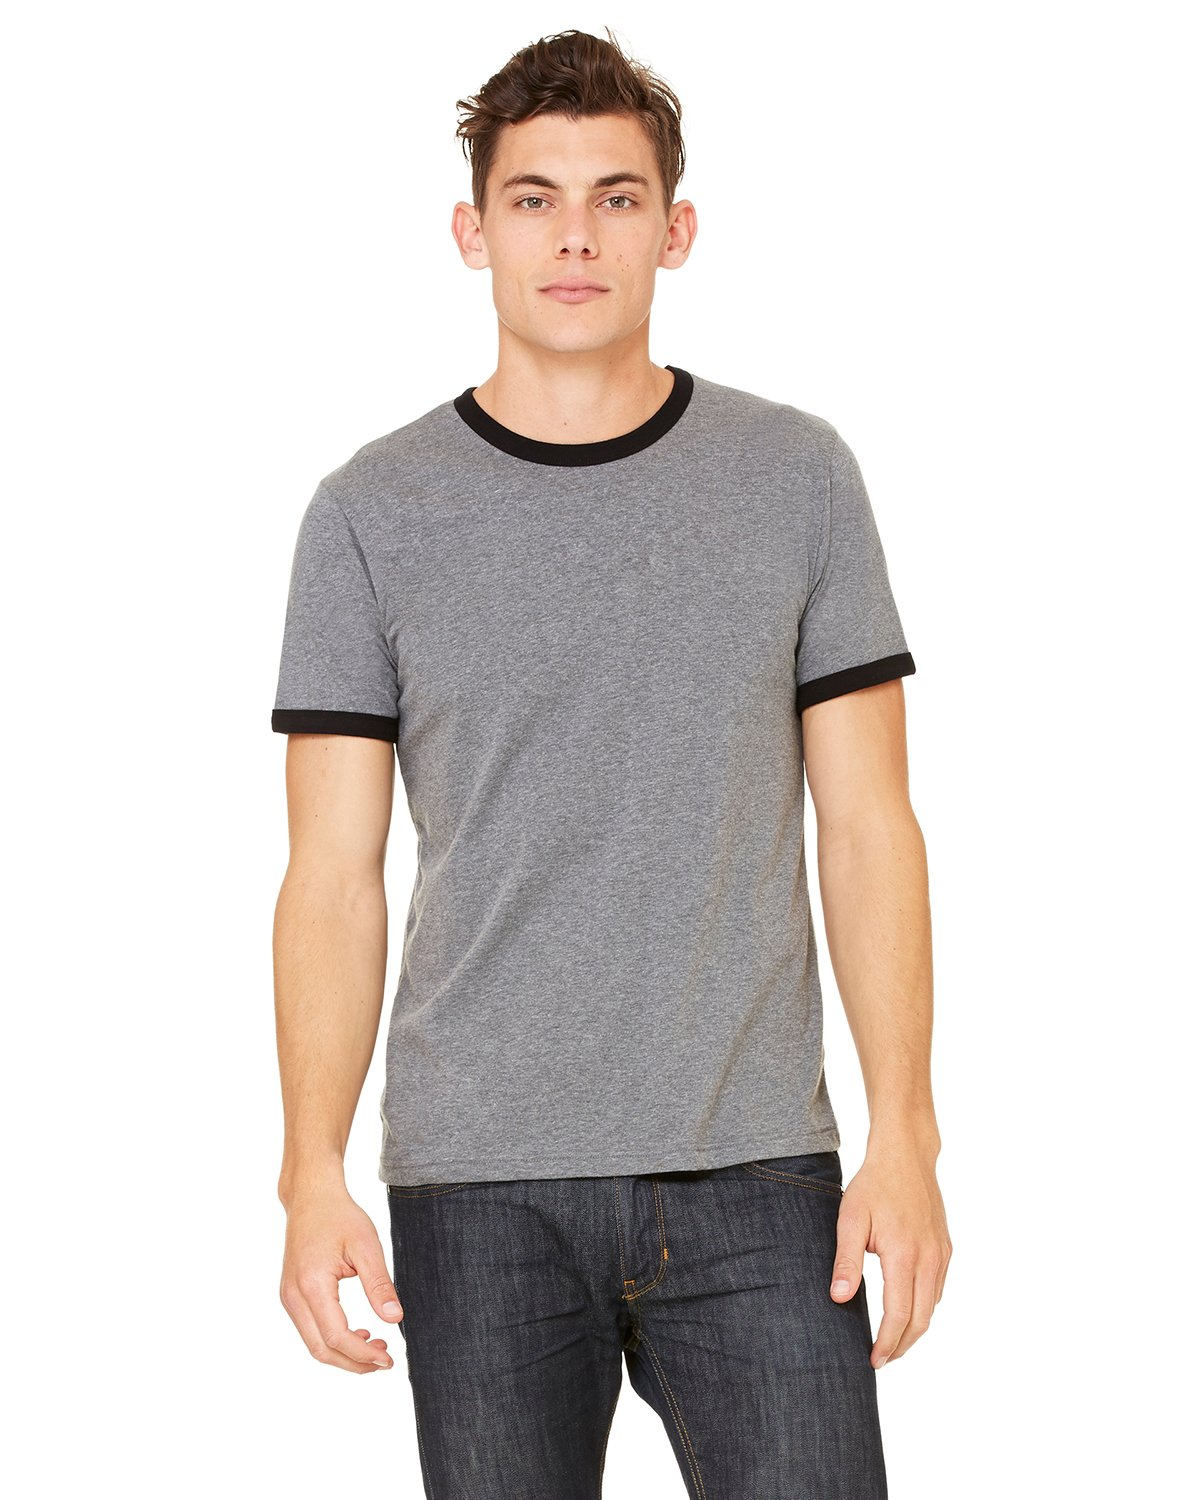 Bella + Canvas - 3055C - Men's Jersey Short-Sleeve Ringer T-Shirt